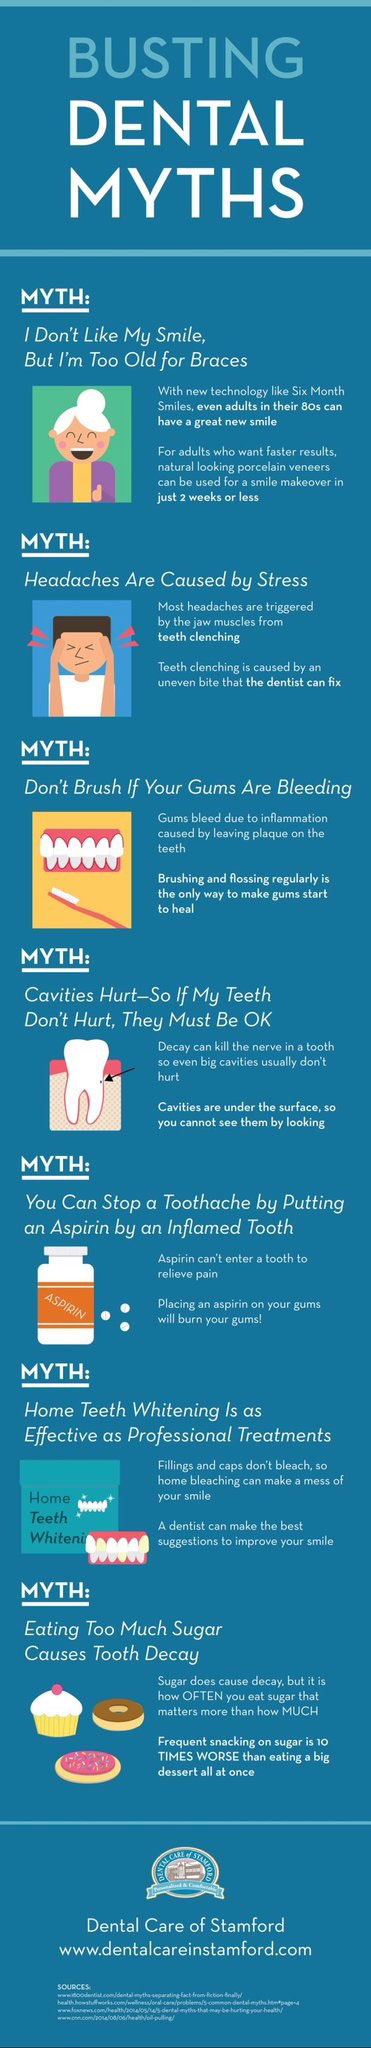 Am I Too Old for Braces - Dental Myths